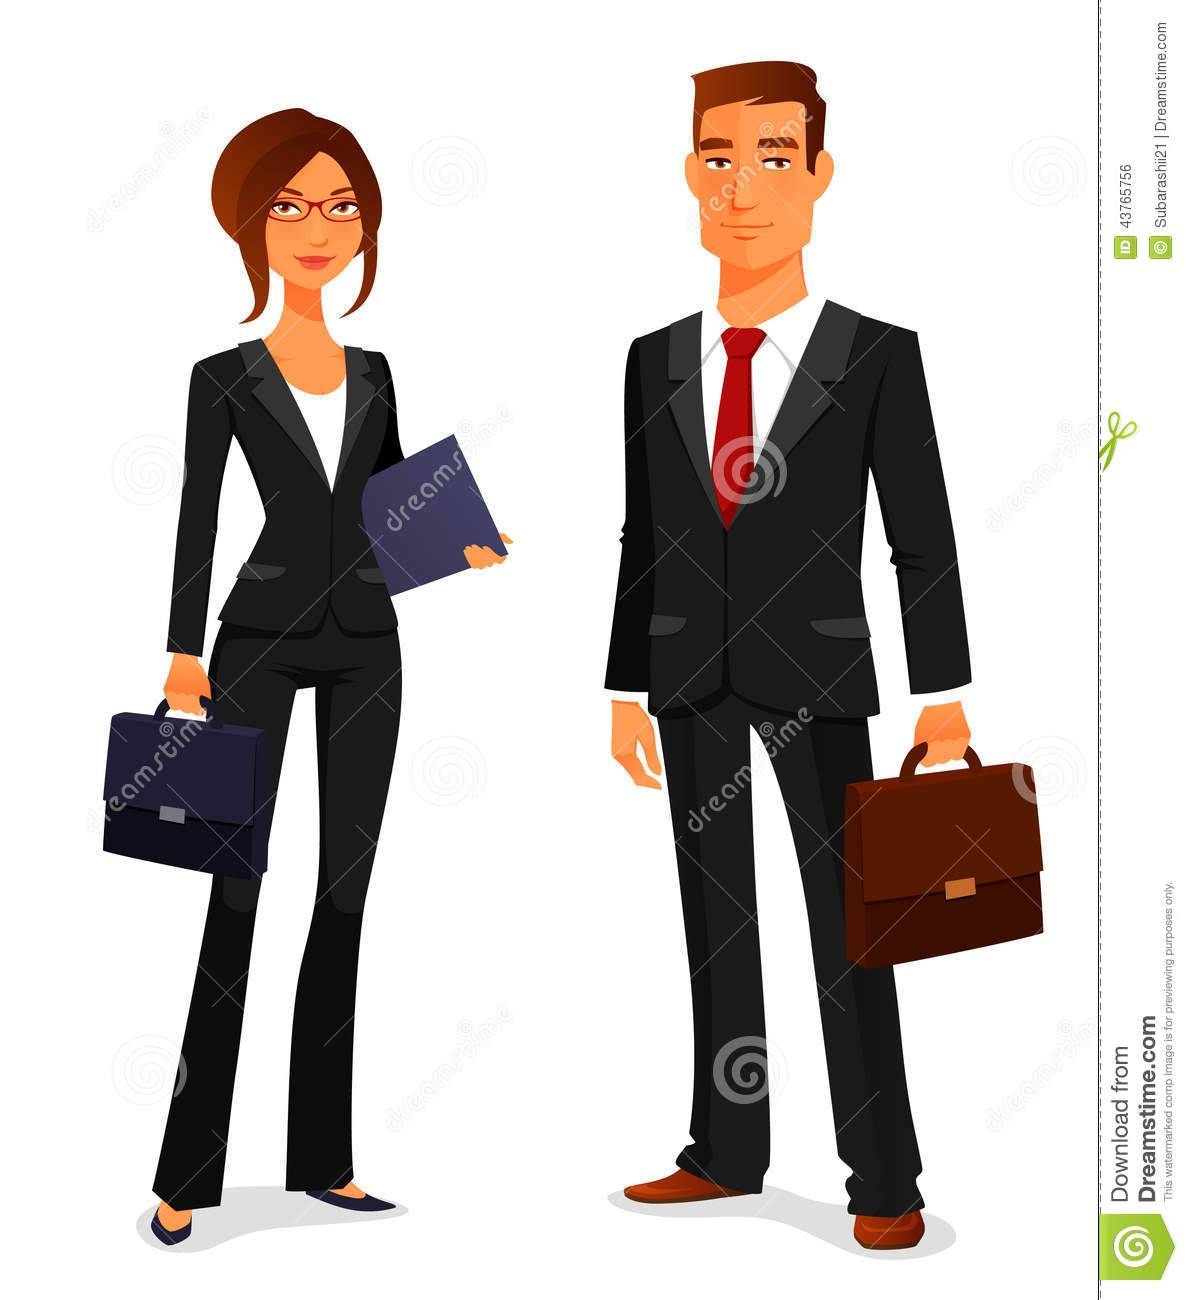 Young Man And Woman In Business Suit Stock Vector - Image